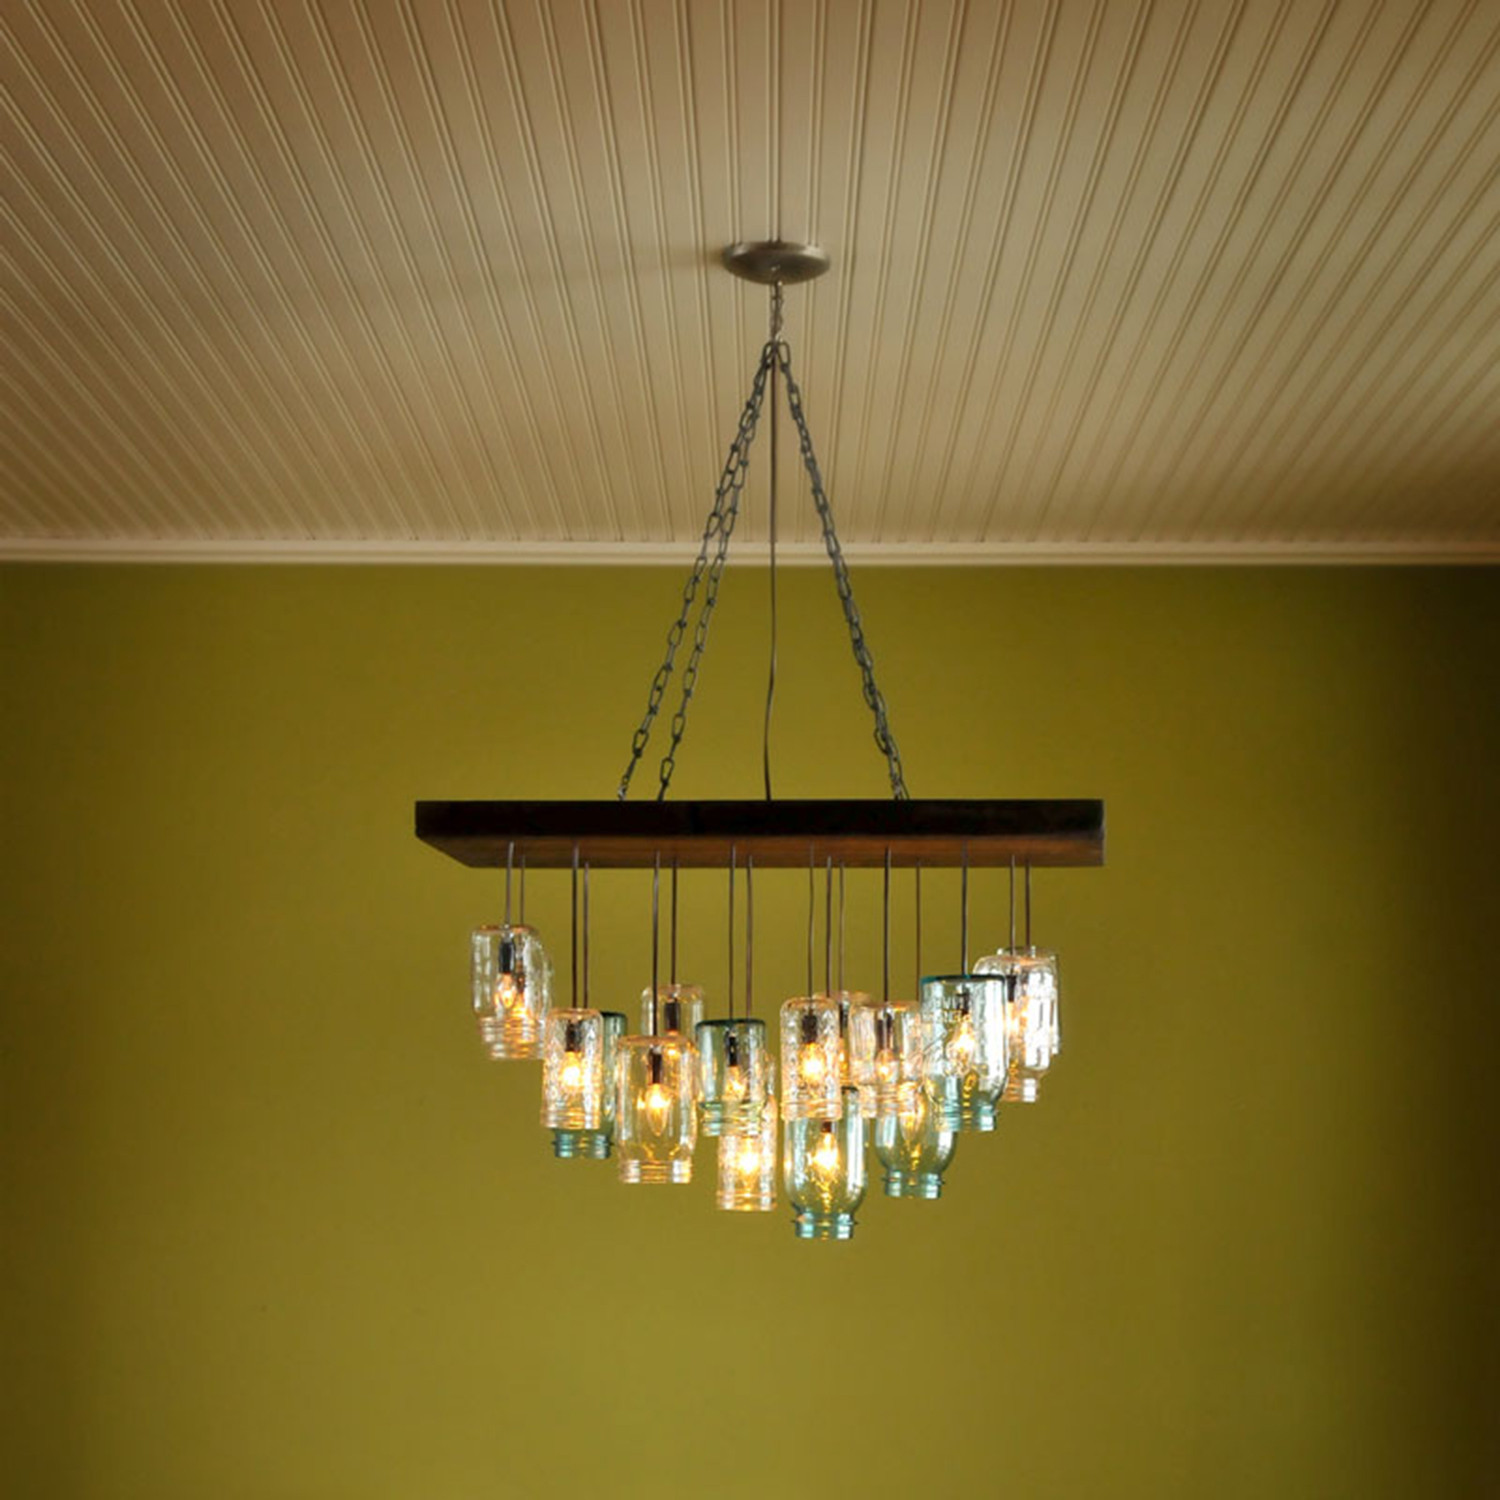 Mason Jar Chandelier Rectangle Dirk Nykamp Design Touch of